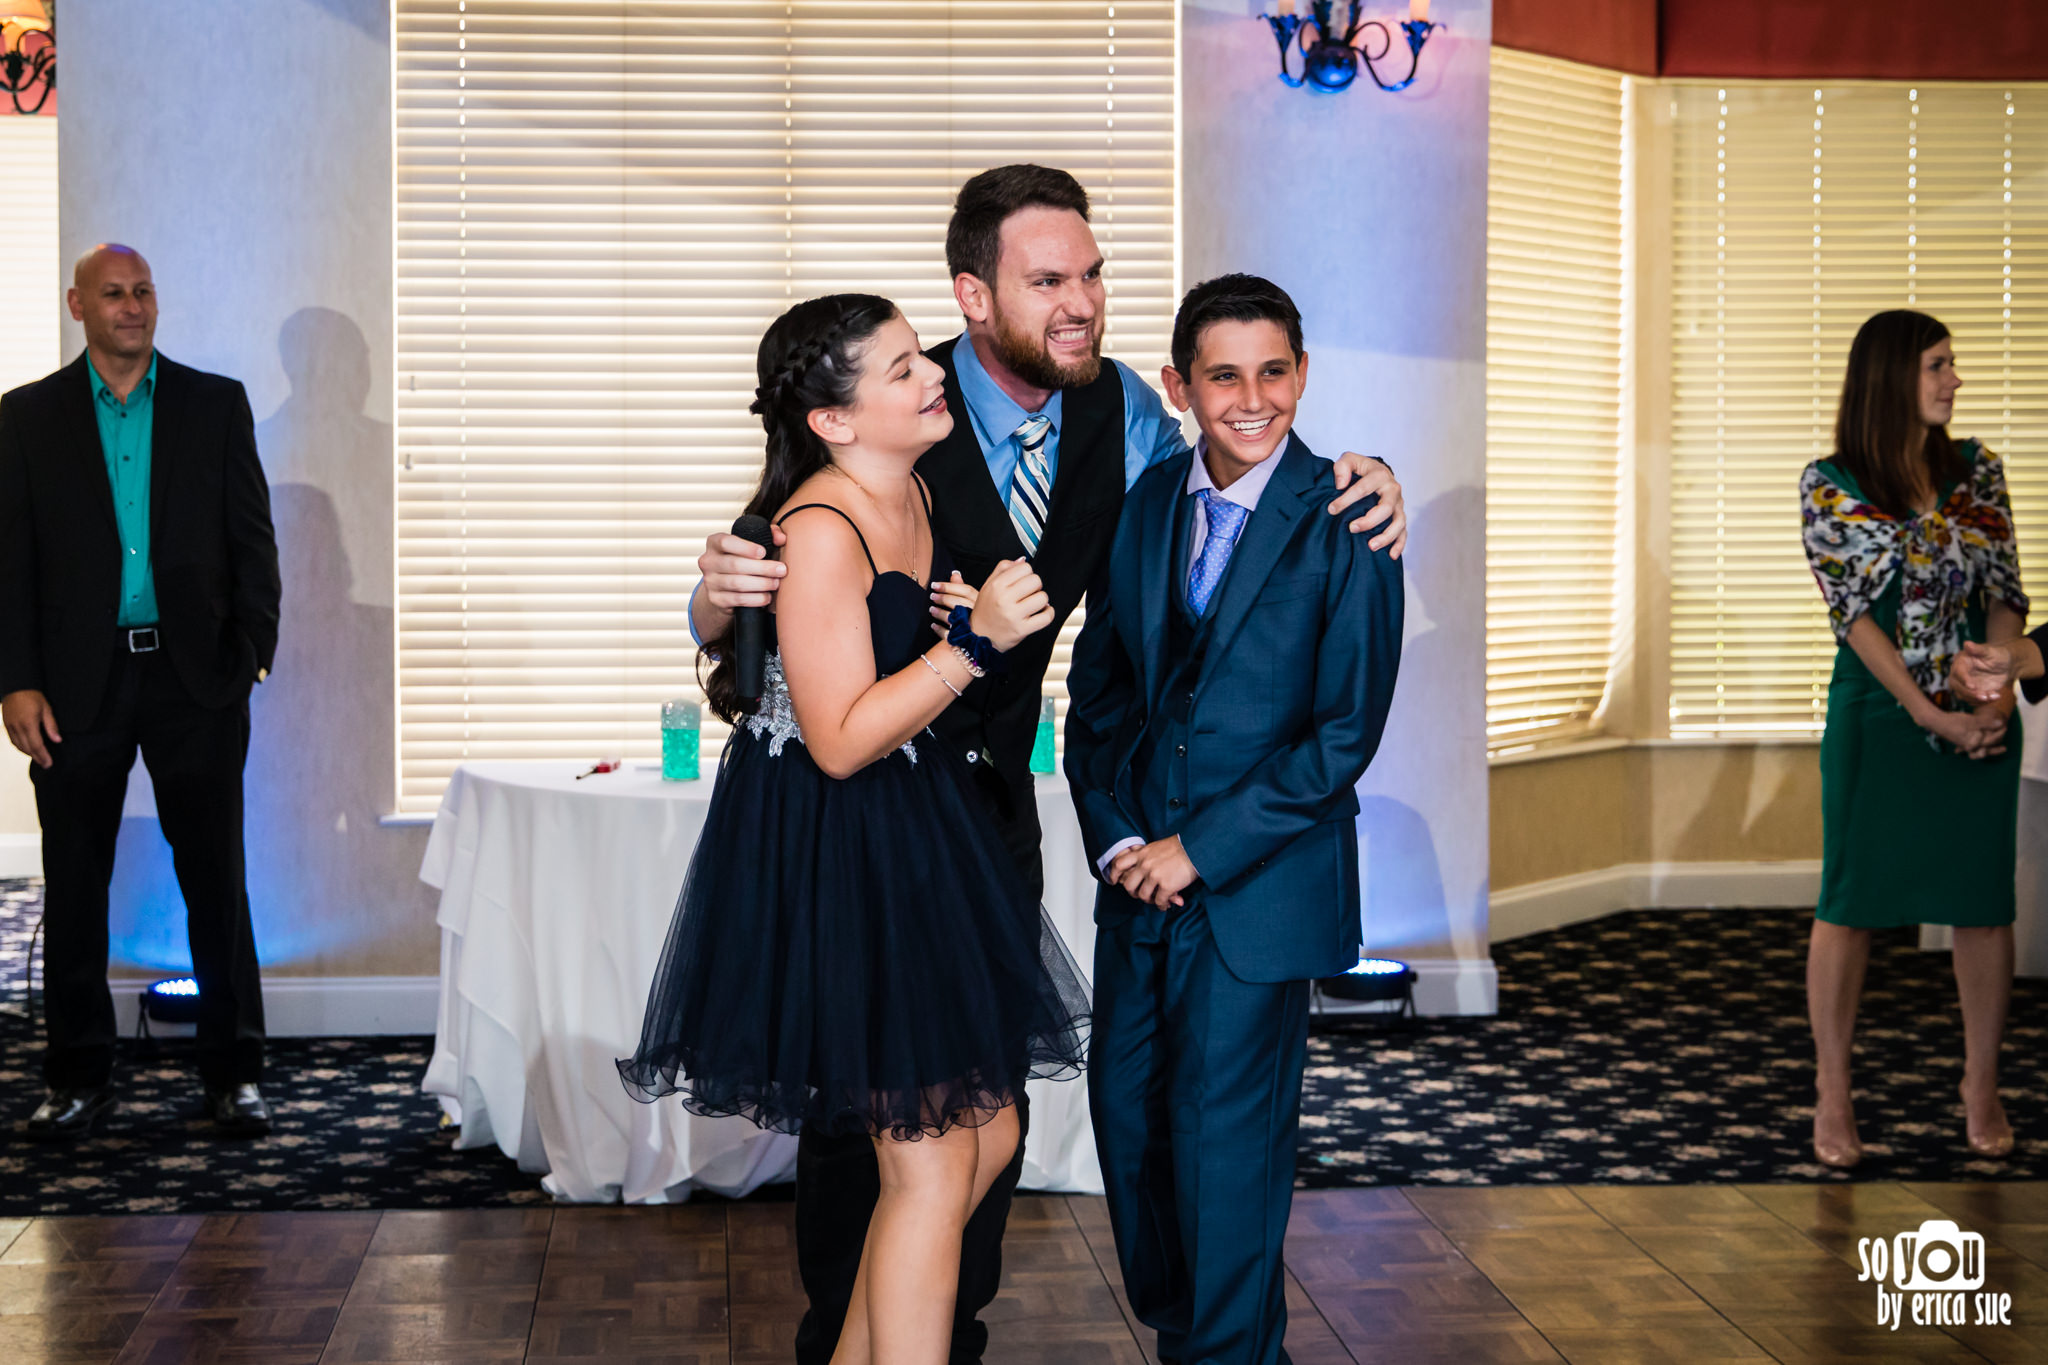 so-you-by-erica-sue-bnai-mitzvah-photographer-delray-beach-golf-club-fl-3221.jpg